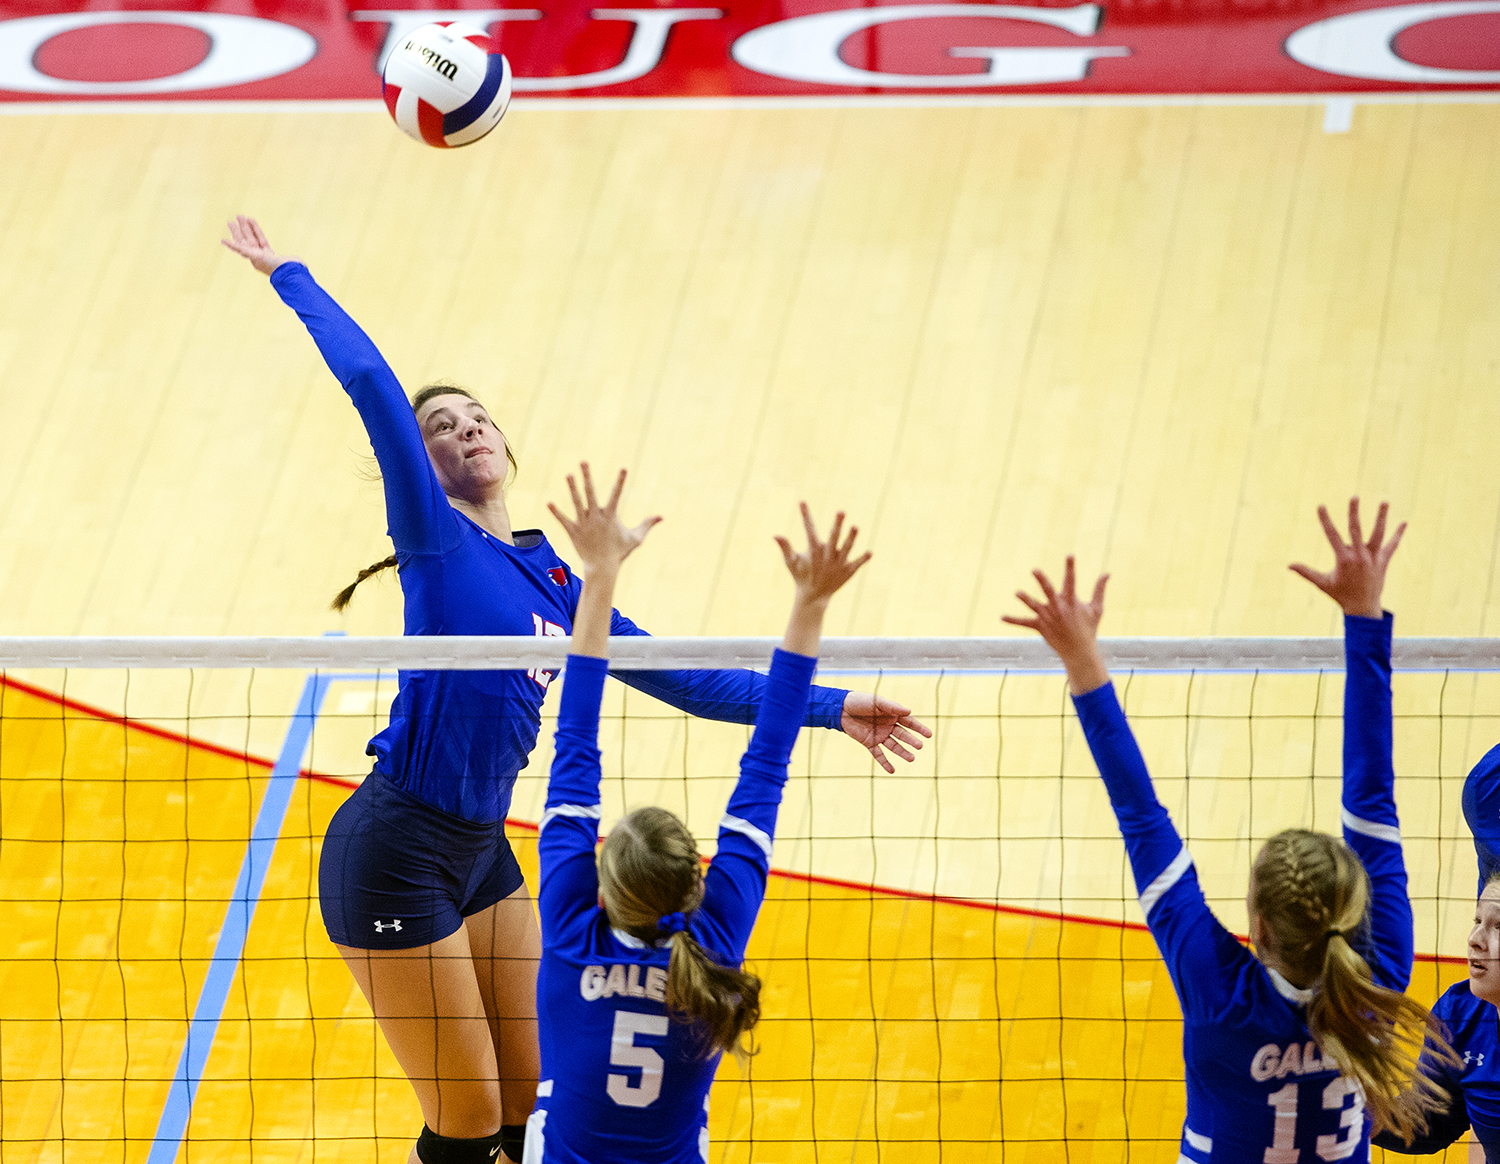 Pleasant Plains' Maddie Reiser spikes the ball against Galena during the IHSA Class 2A Volleyball championship at Redbird Arena in Normal Saturday, Nov. 10, 2018. [Ted Schurter/The State Journal-Register]